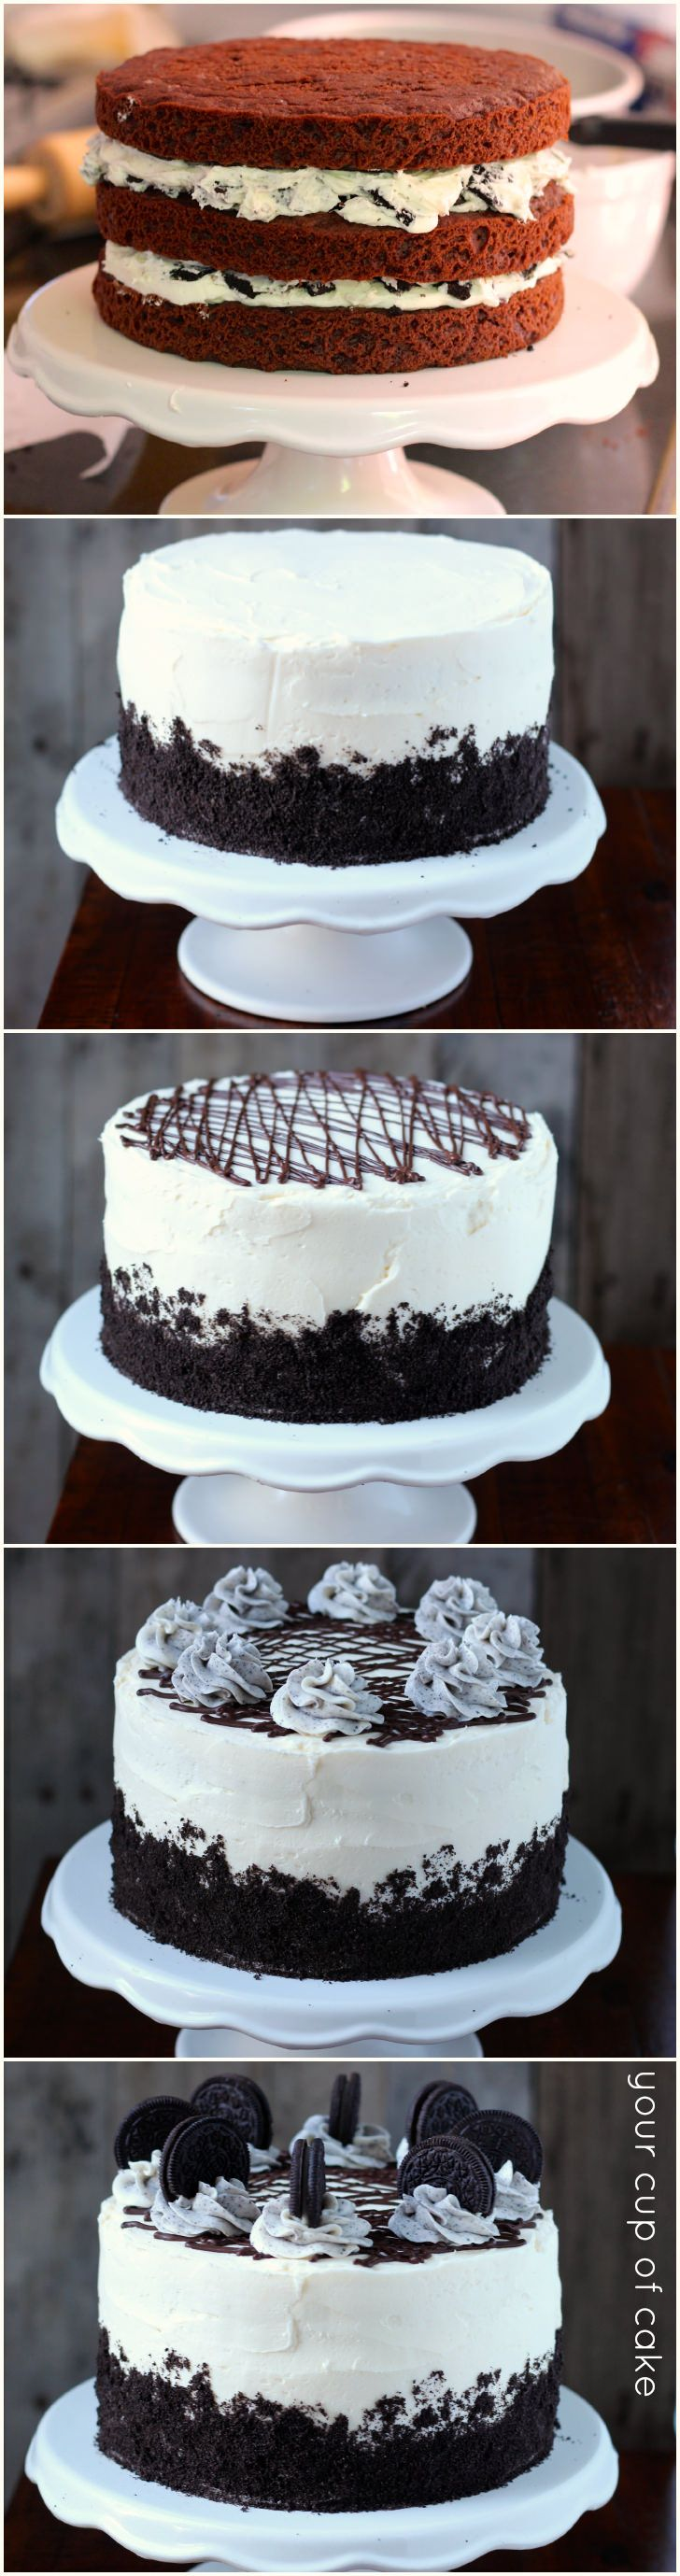 How to make an Oreo Cake. Must make for Justins birthday!